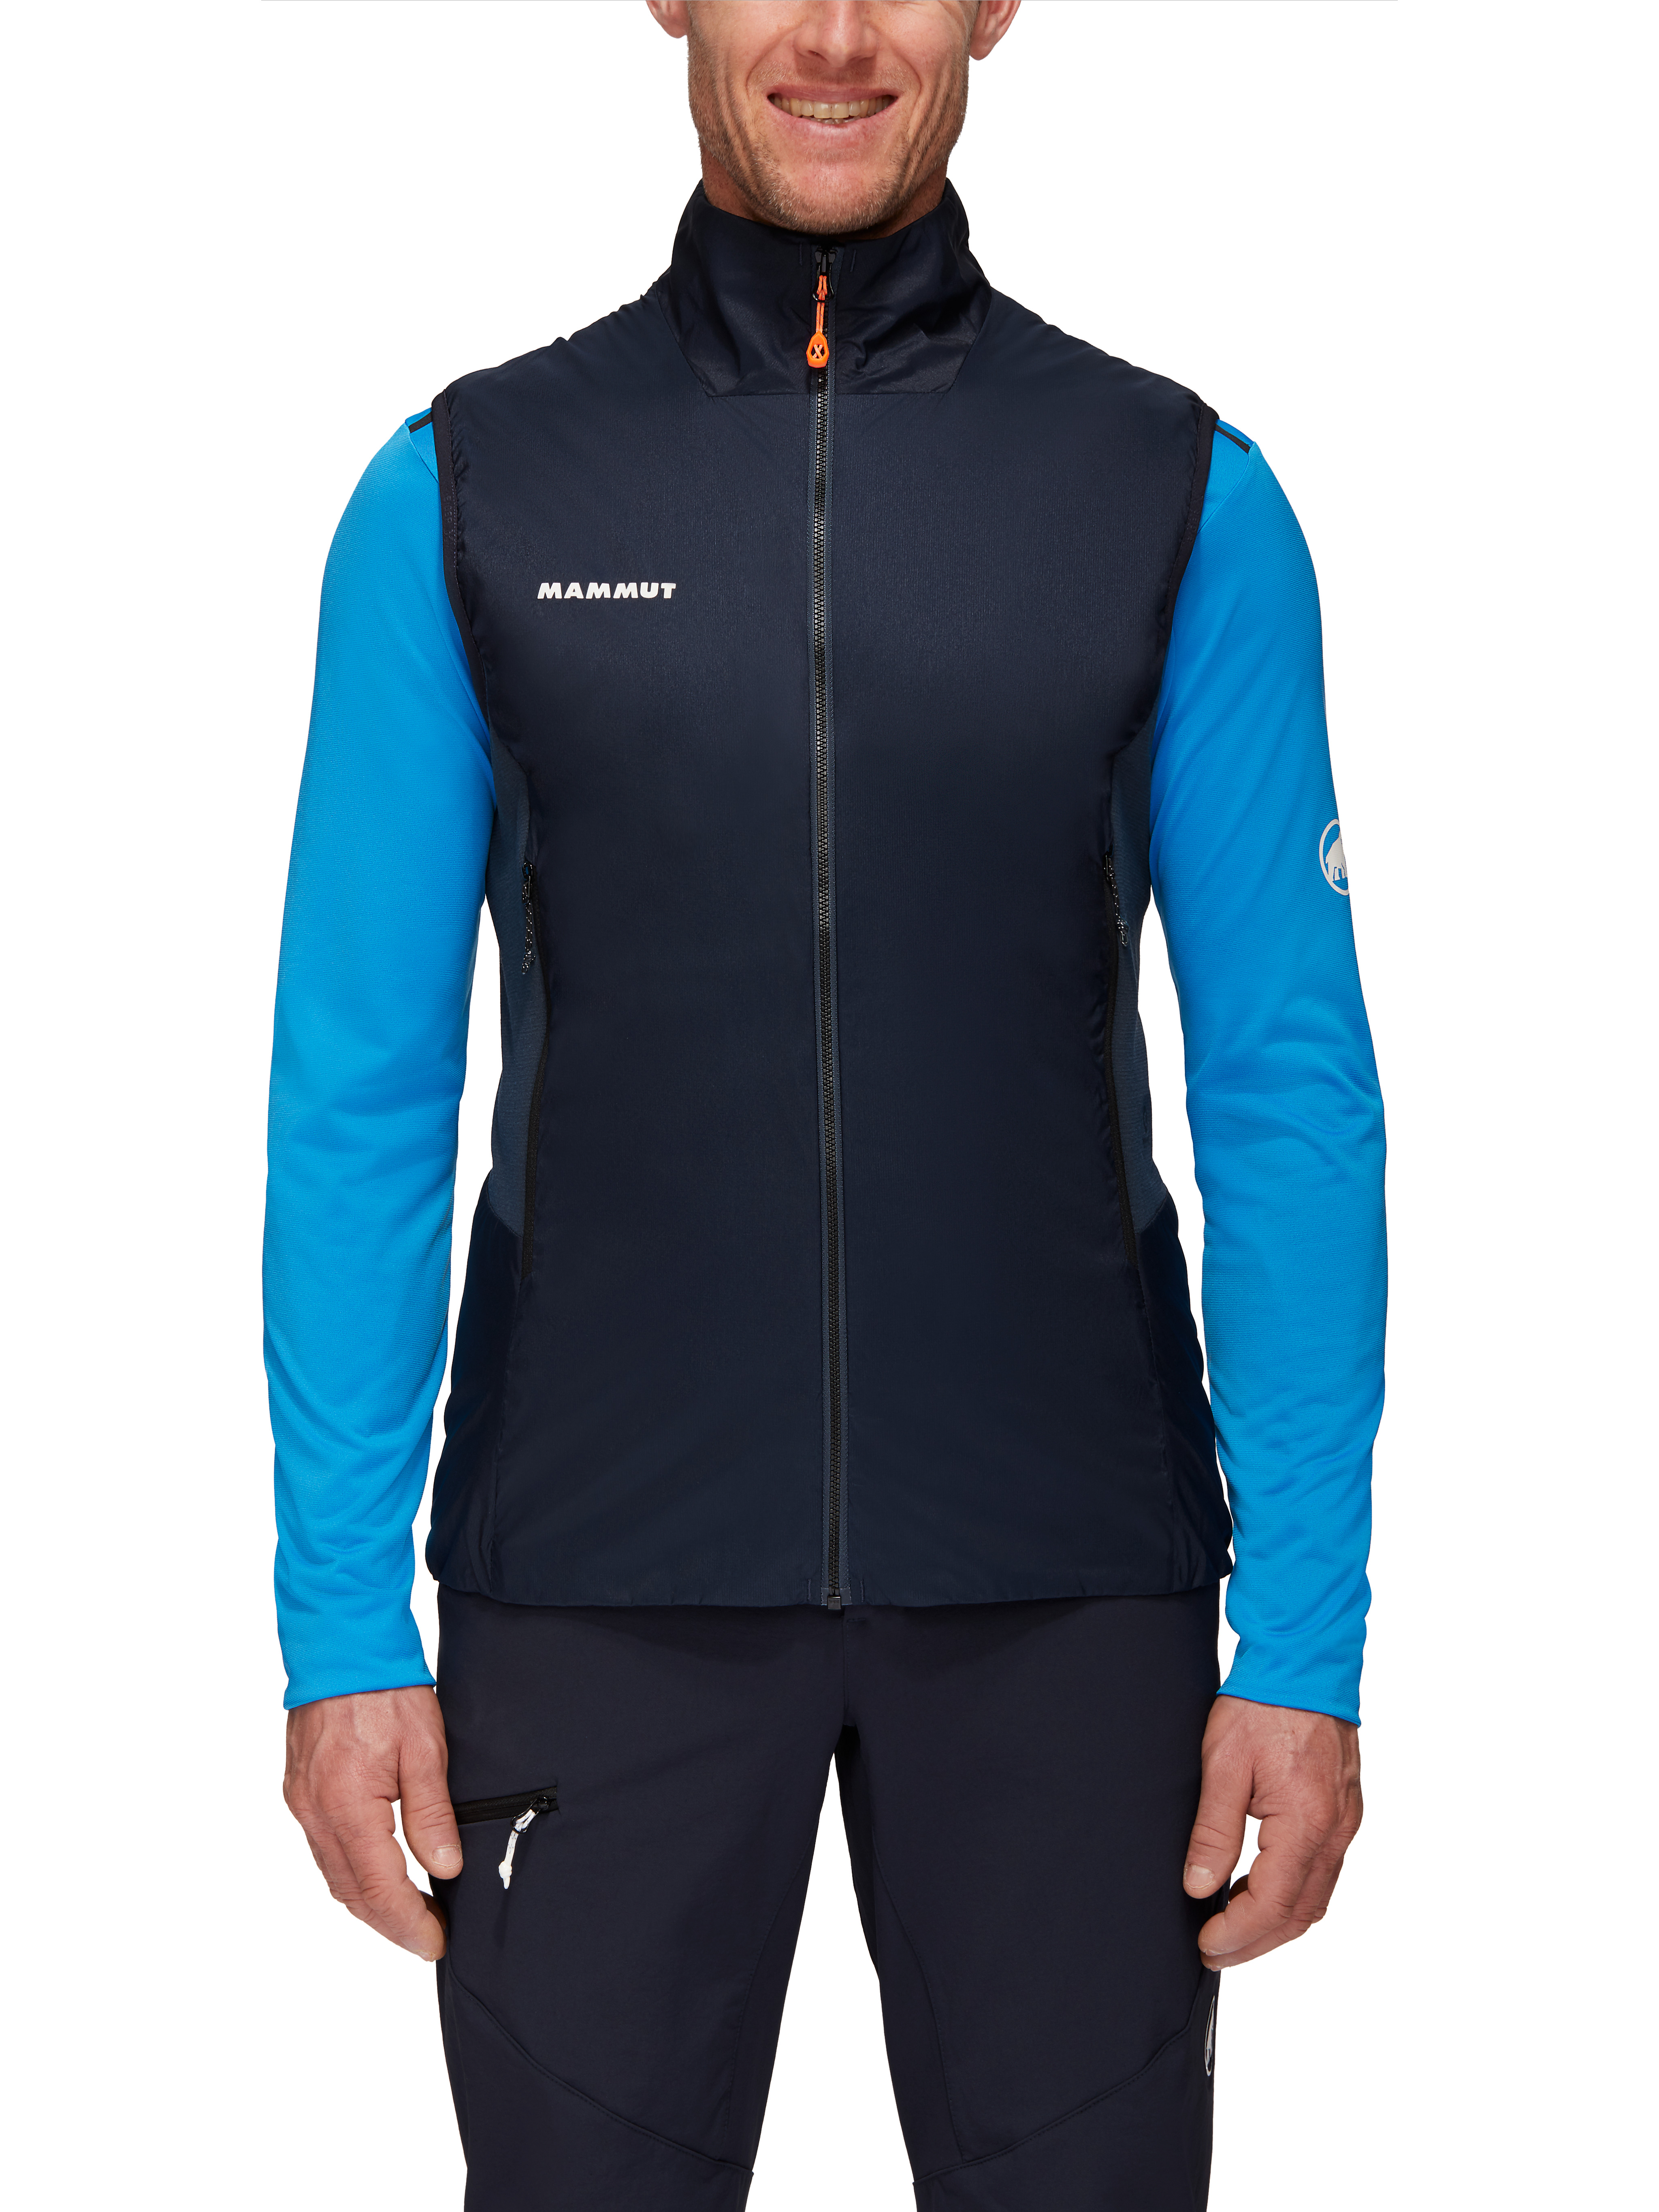 Eigerjoch IN Hybrid Vest Men product image